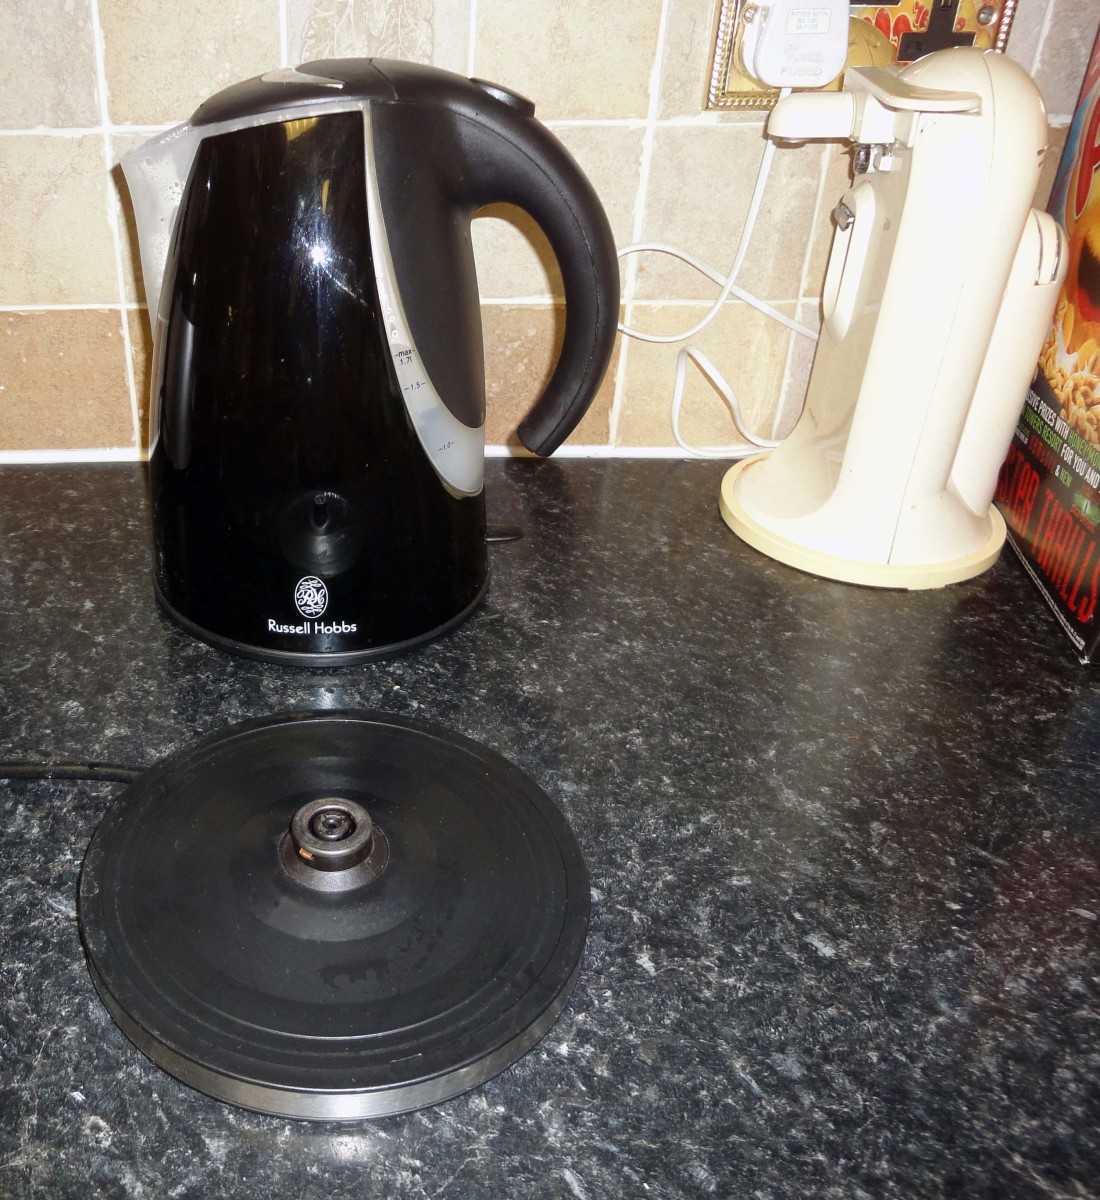 Russell Hobb cordless jug kettle and base